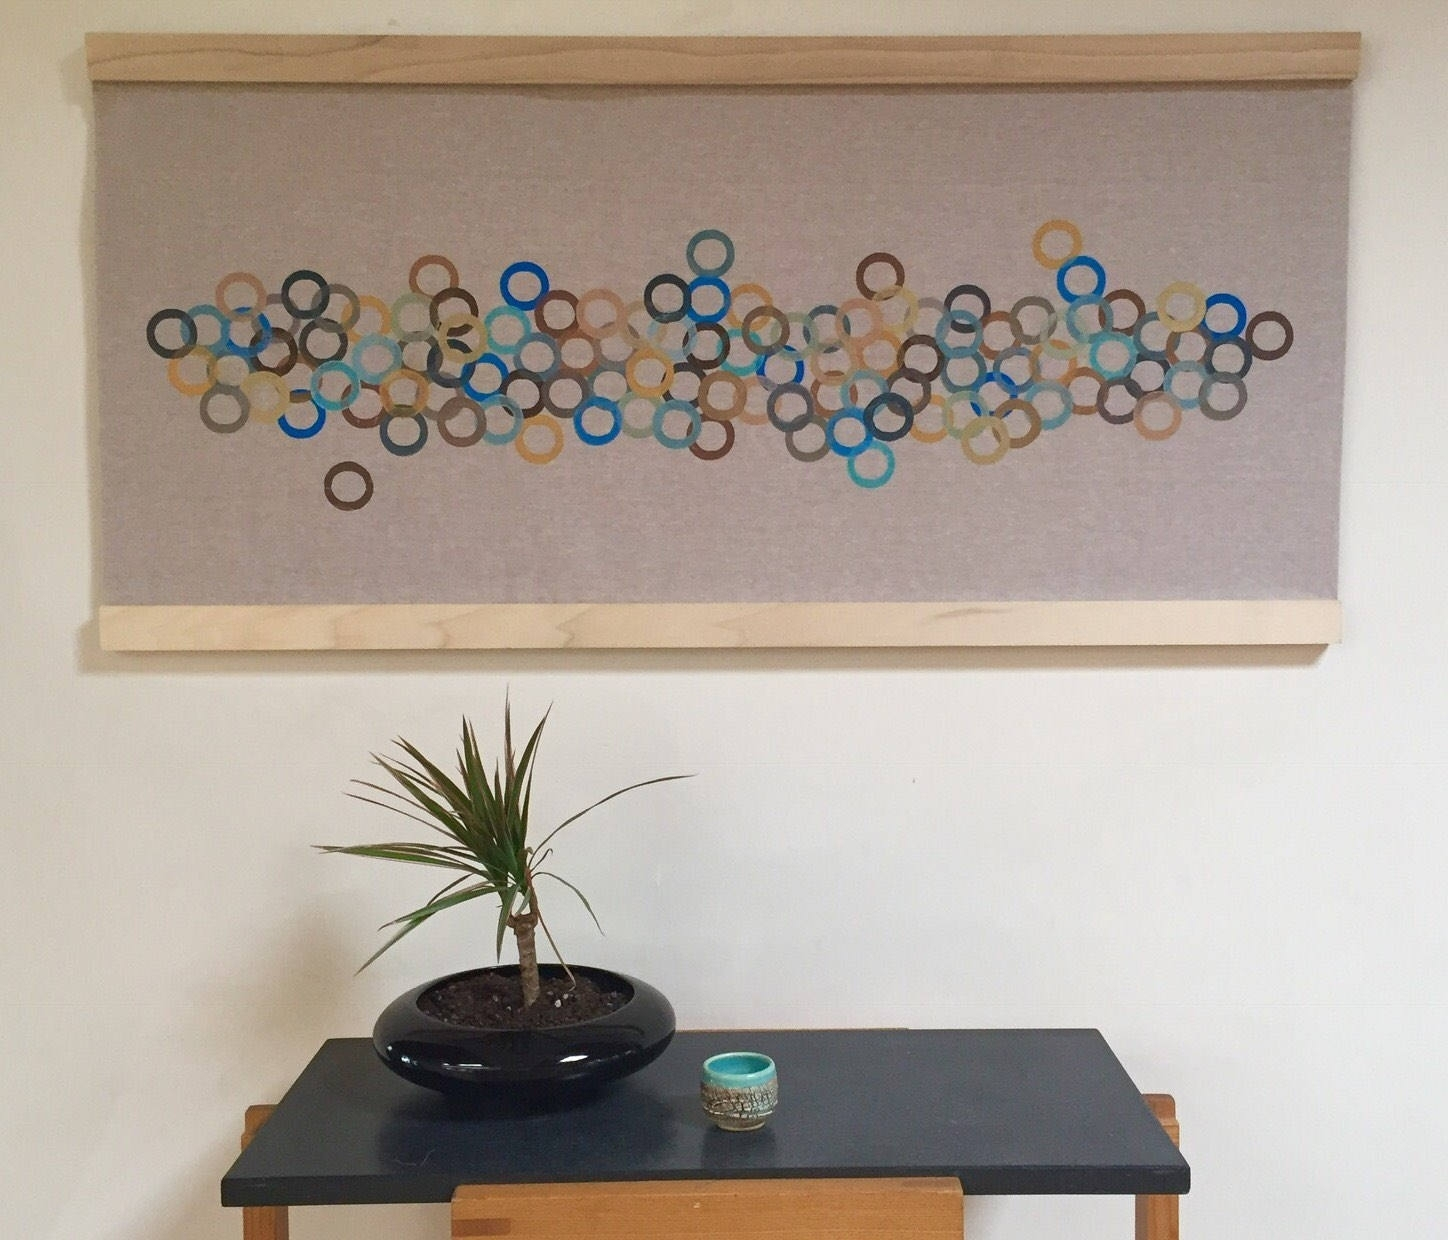 Woven Wall Hanging, Woven Wall Art, Wall Tapestry Weaving, Wall Pertaining To Most Up To Date Contemporary Textile Wall Art (View 15 of 15)